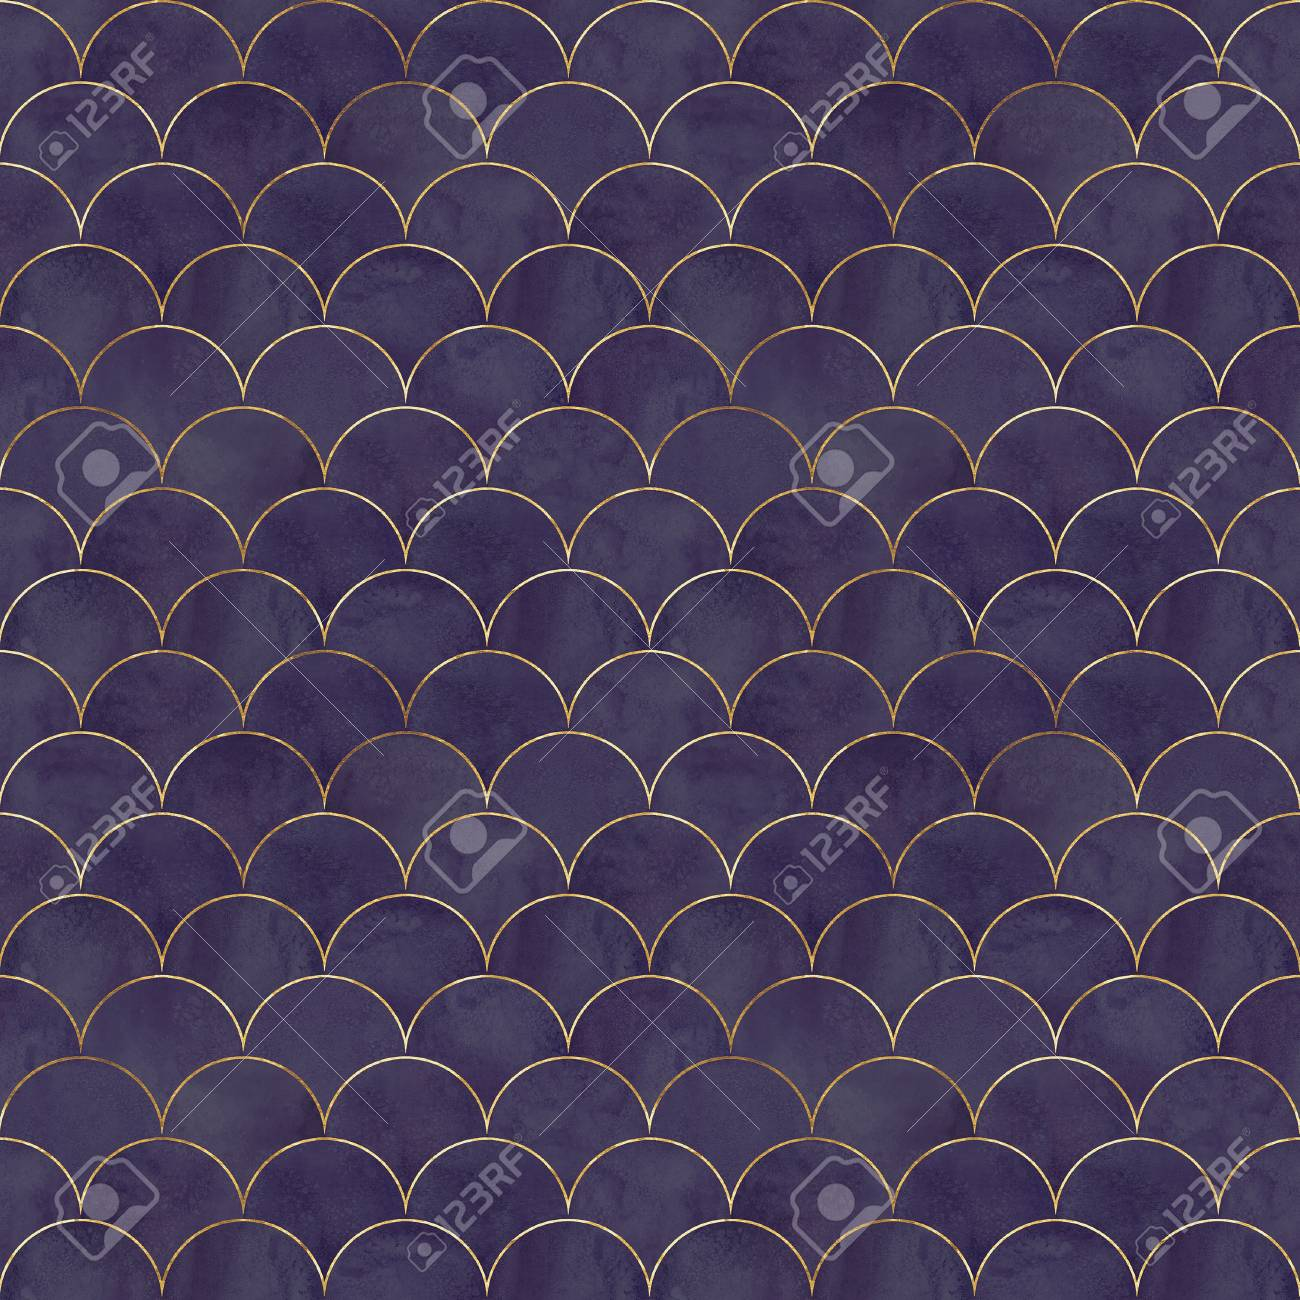 Mermaid fish scale wave japanese luxury colorful seamless pattern